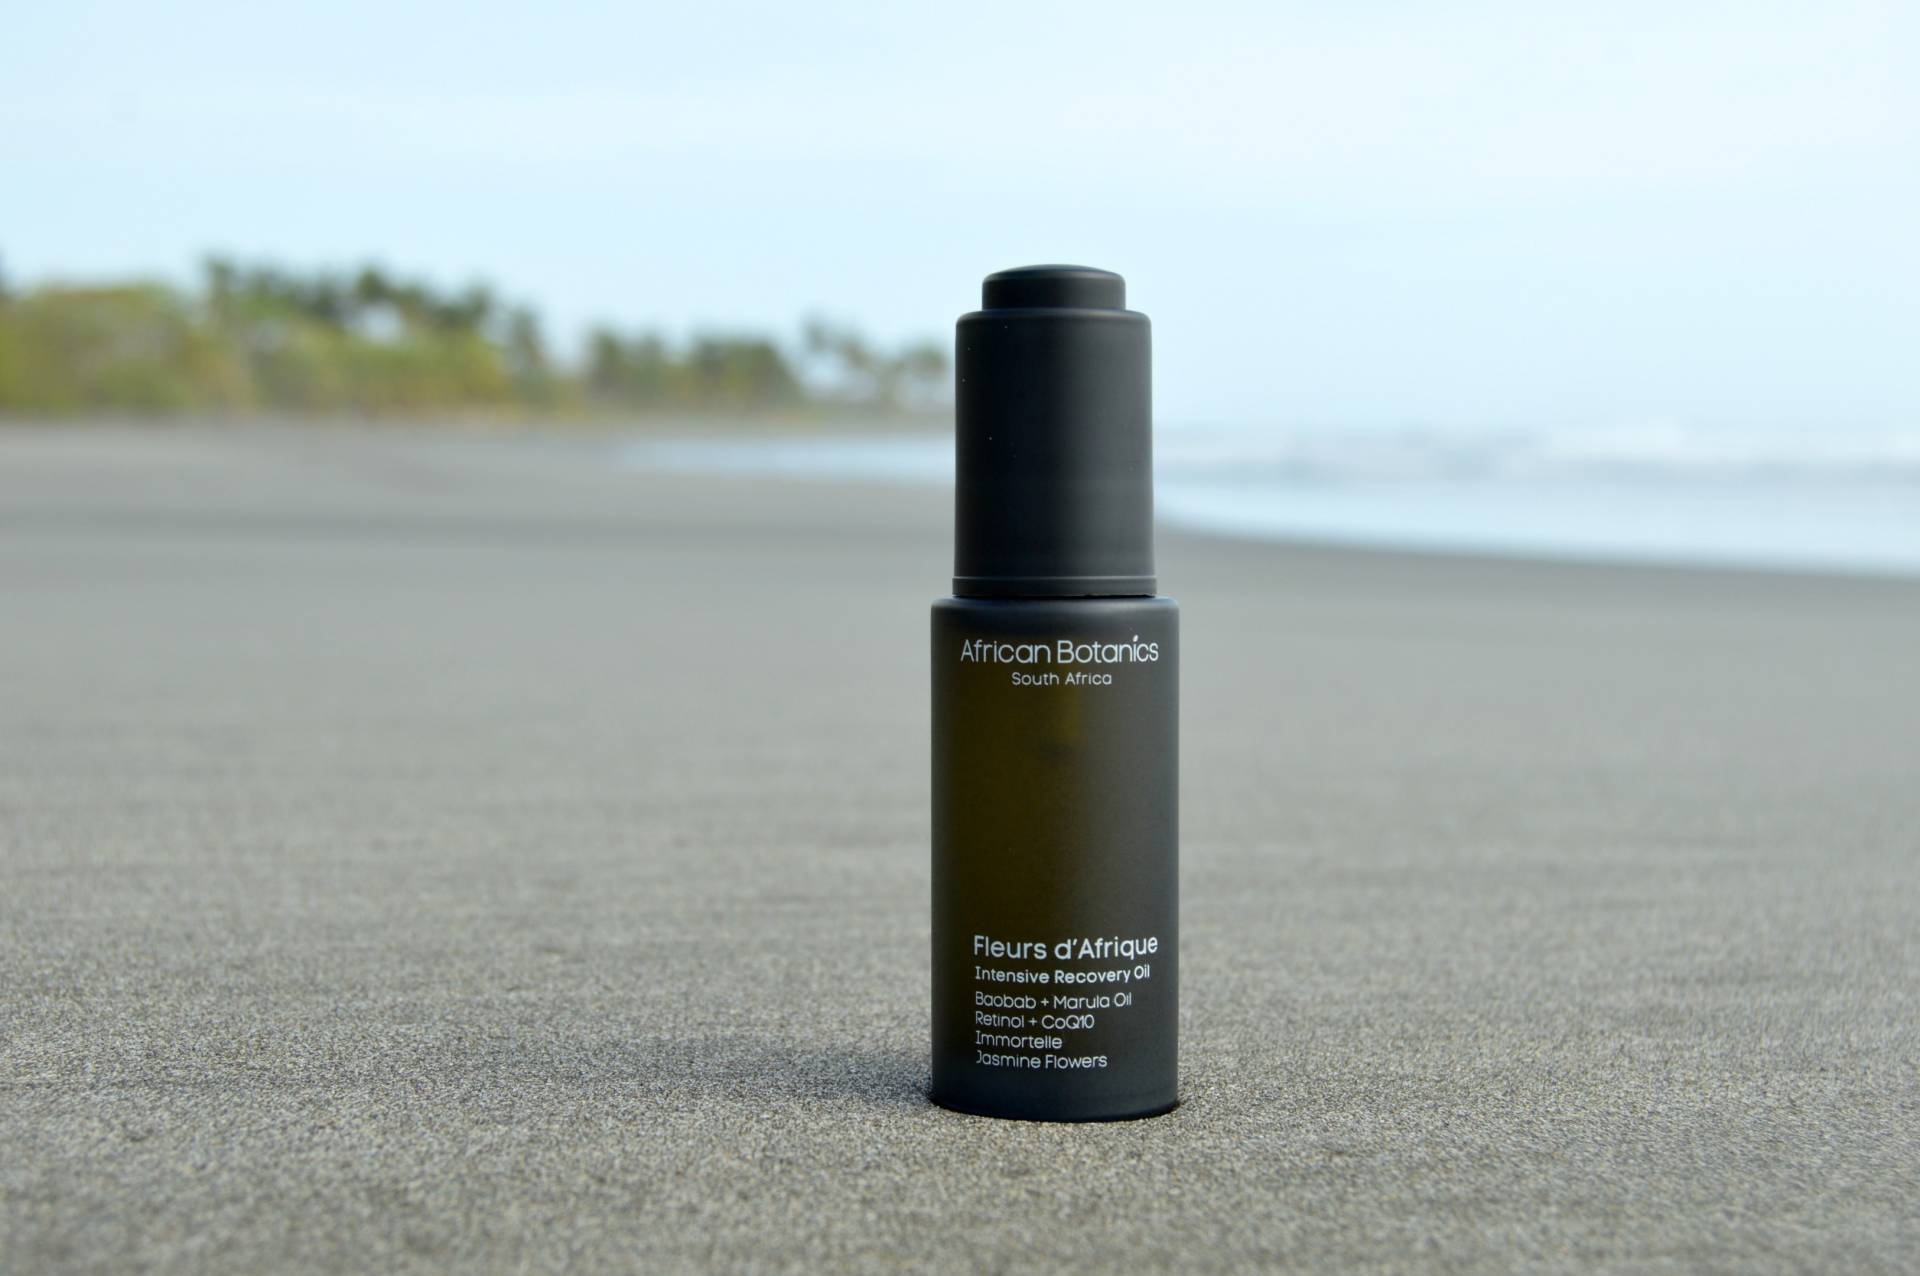 african botanics review intensive recovery oil fleur d afrique inhautepursuit eco luxe organic natural beauty skincare